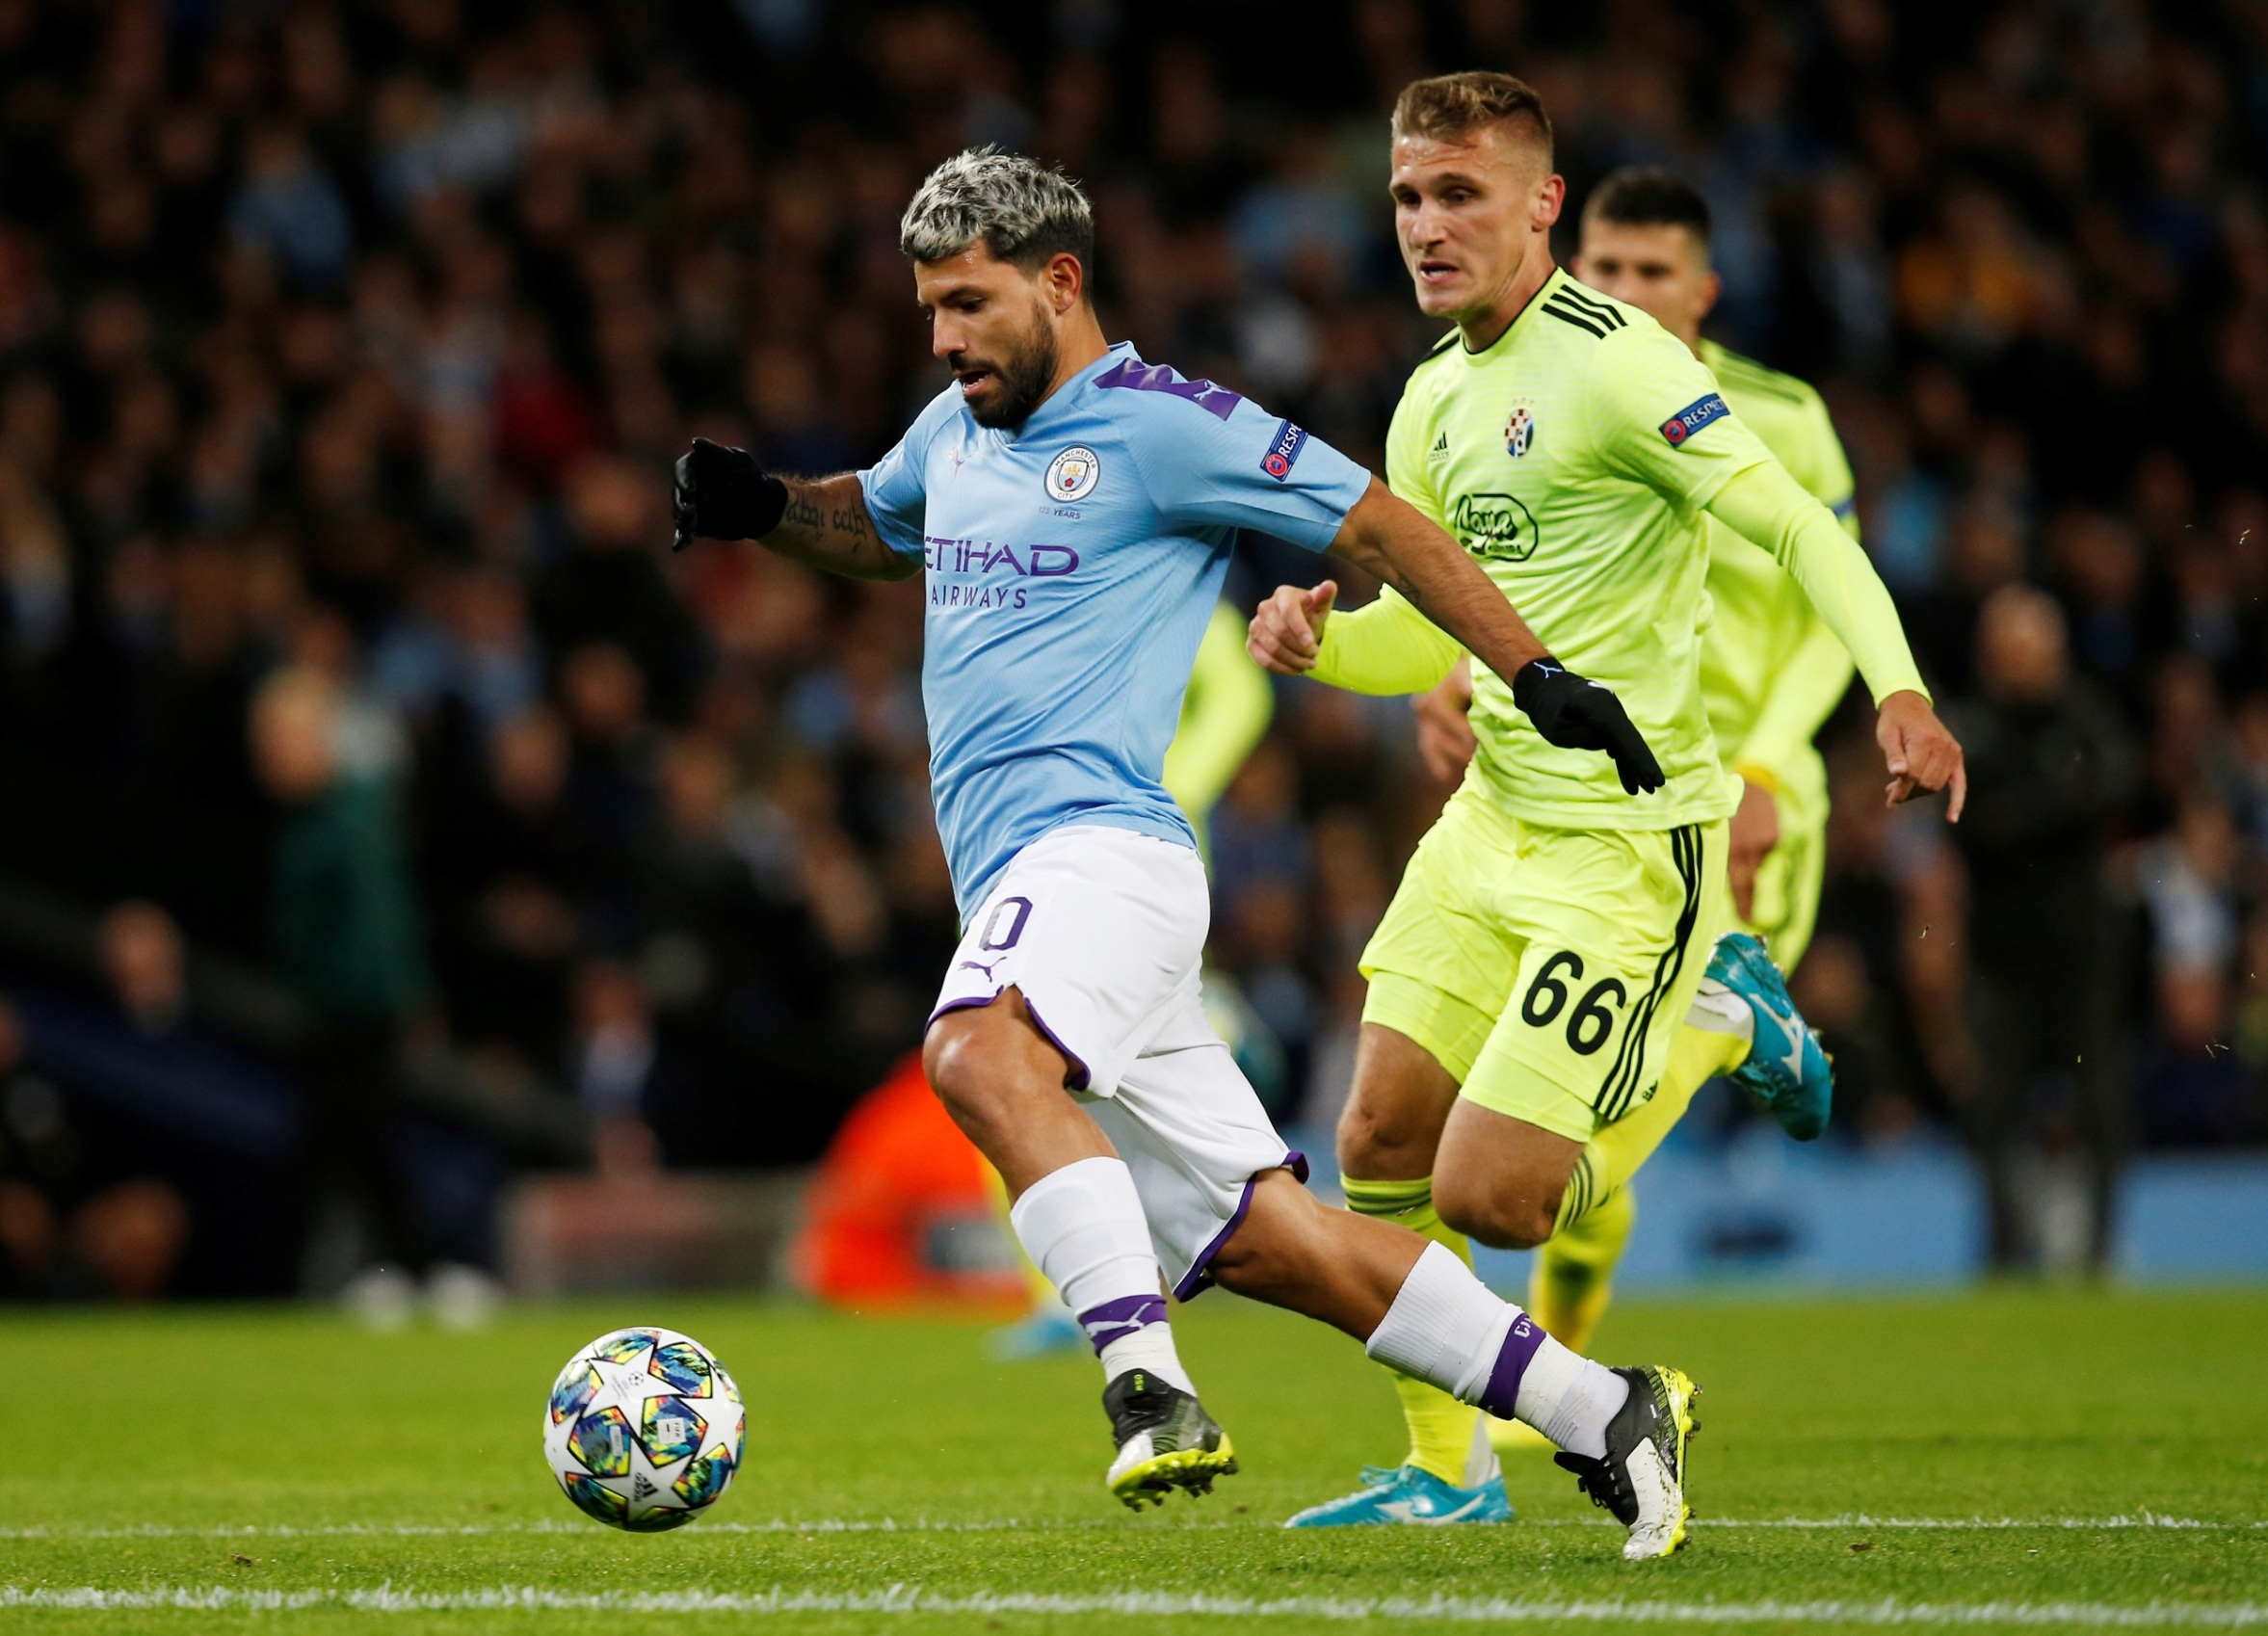 Soccer Football - Champions League - Group C - Manchester City v GNK Dinamo Zagreb - Etihad Stadium, Manchester, Britain - October 1, 2019  Manchester City's Sergio Aguero in action with GNK Dinamo Zagreb's Emir Dilaver   REUTERS/Andrew Yates - RC1BF77BA370